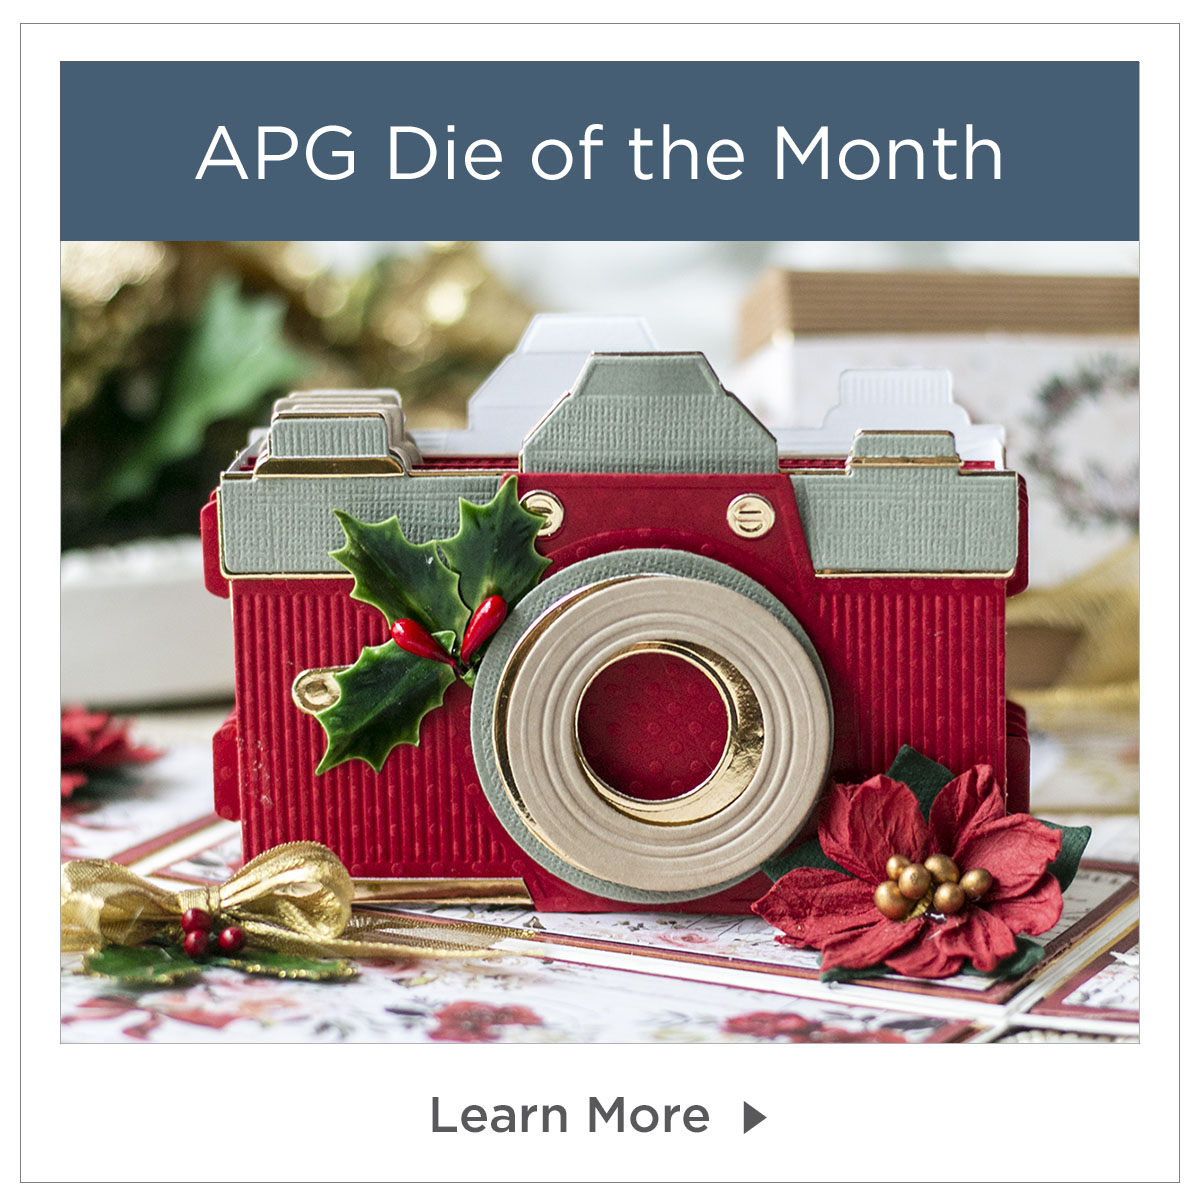 APG Die of the Month